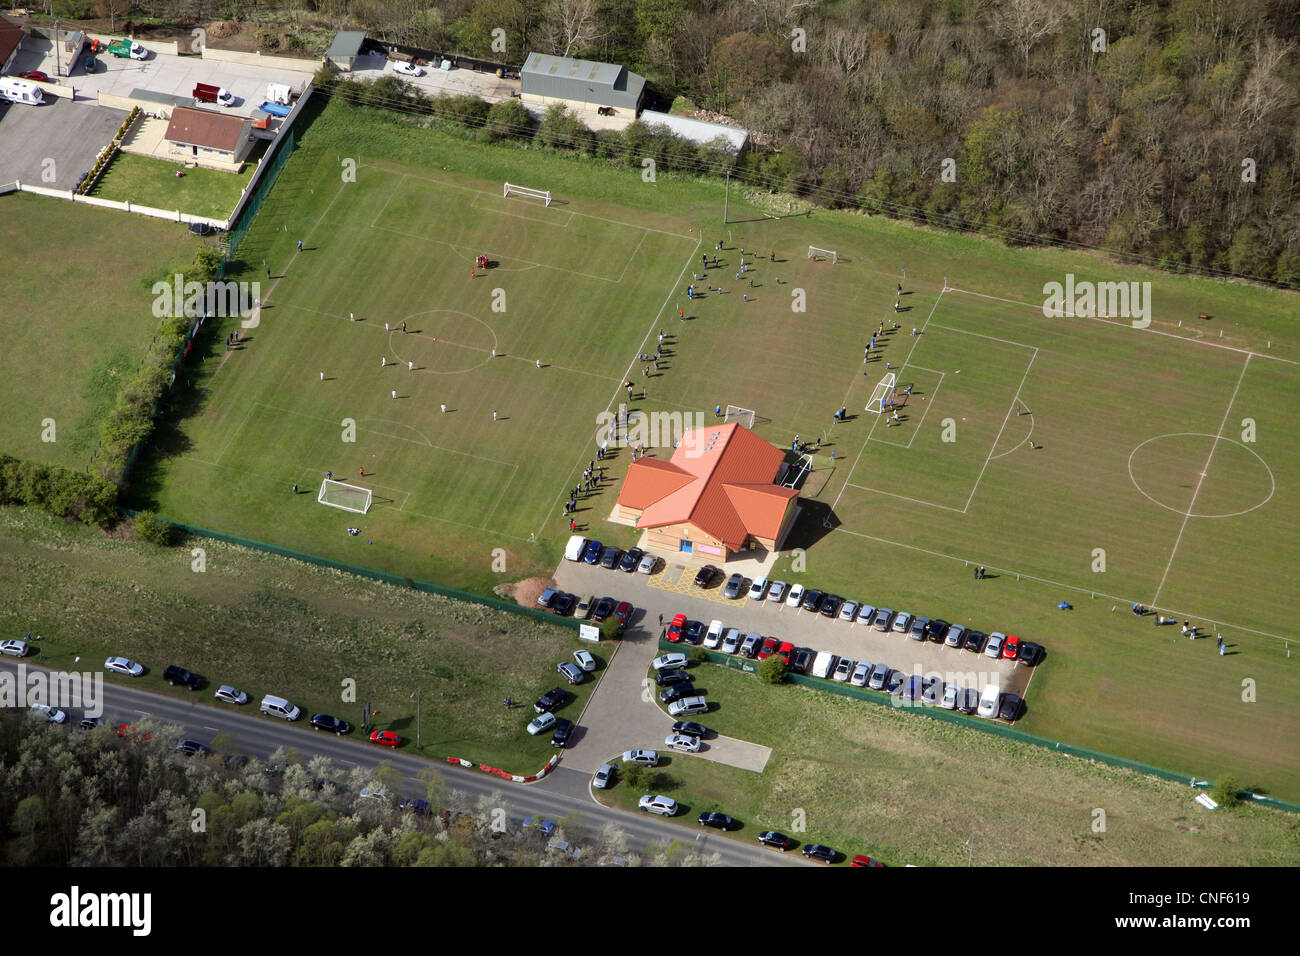 aerial view of Sunday morning football pitches - Stock Image